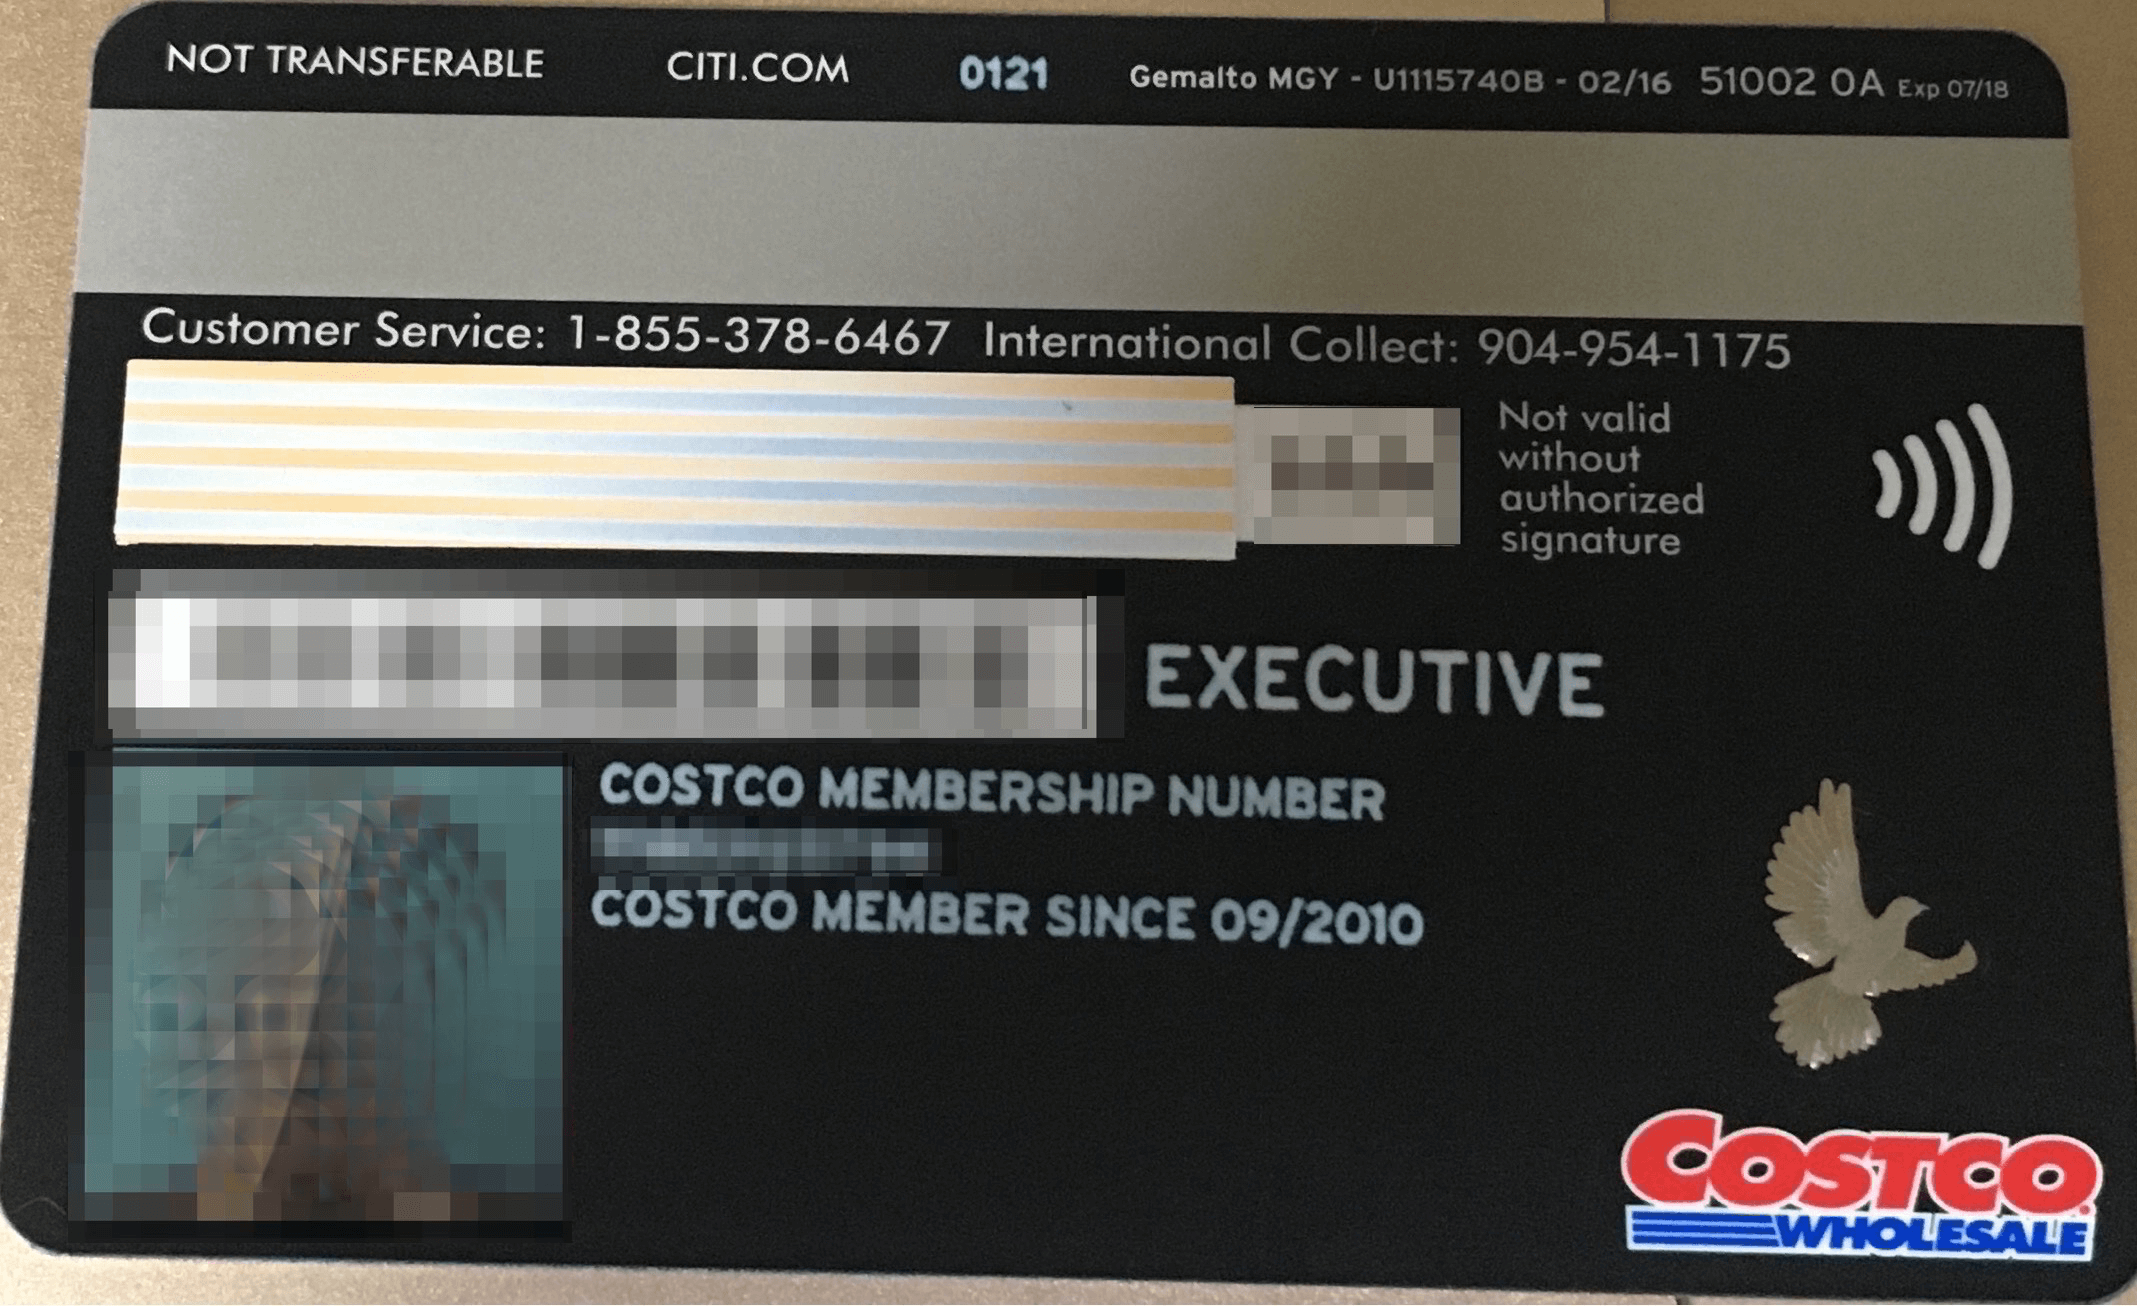 Costco Citi Visa Card Registration